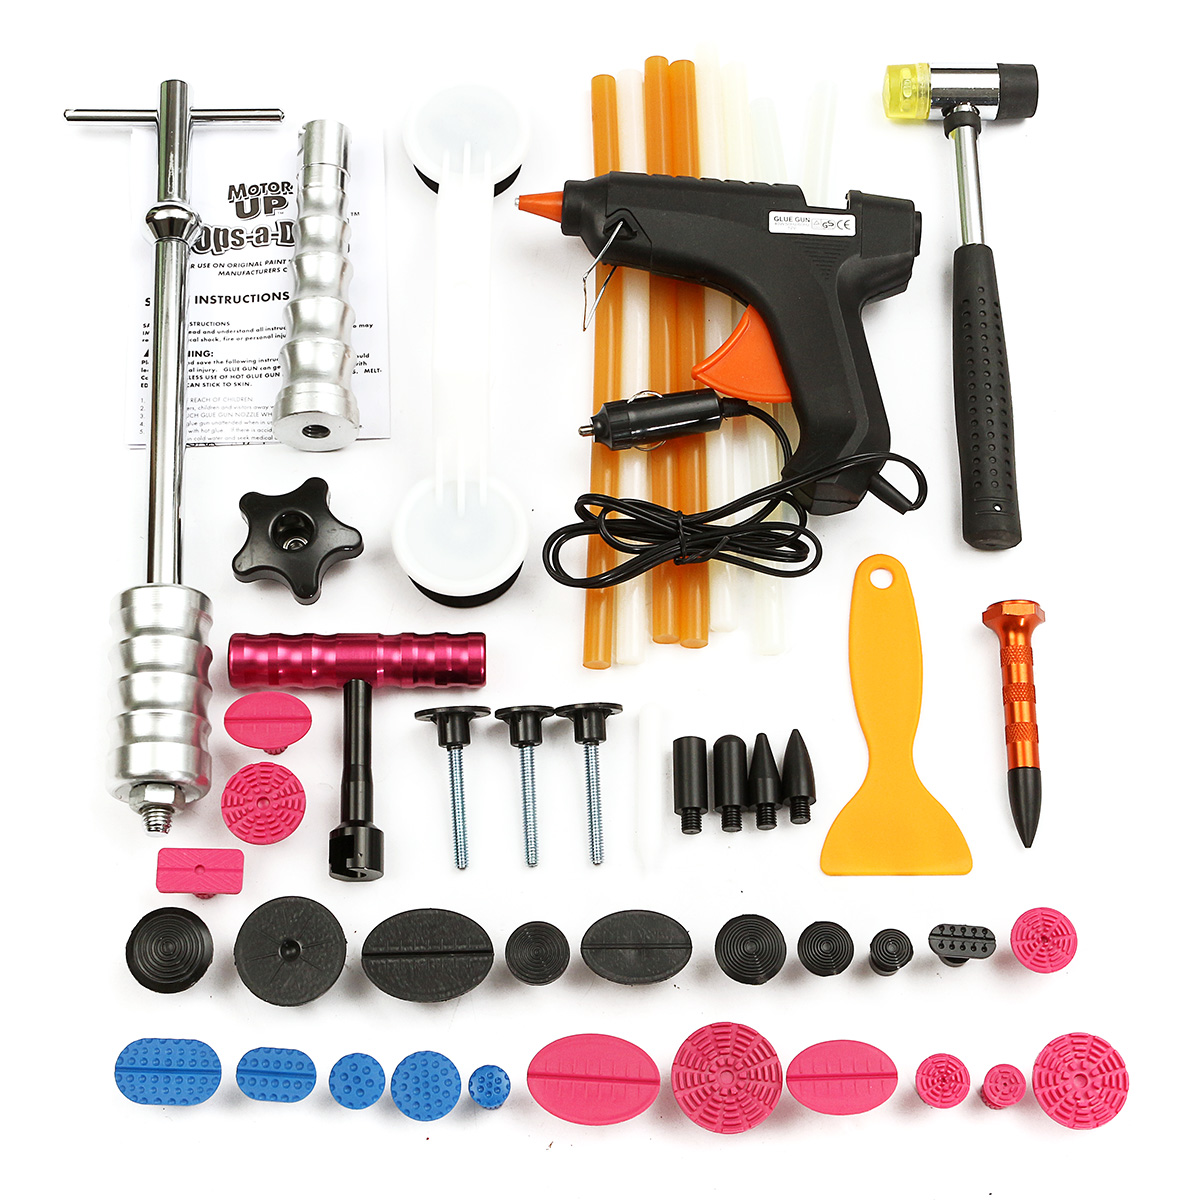 1Set PDR Tools Car Repair Tool Set Dent Removal Slide Hammer Puller Lifter Kit Paintless Dent Repair Tabs with Glue-Gun цена